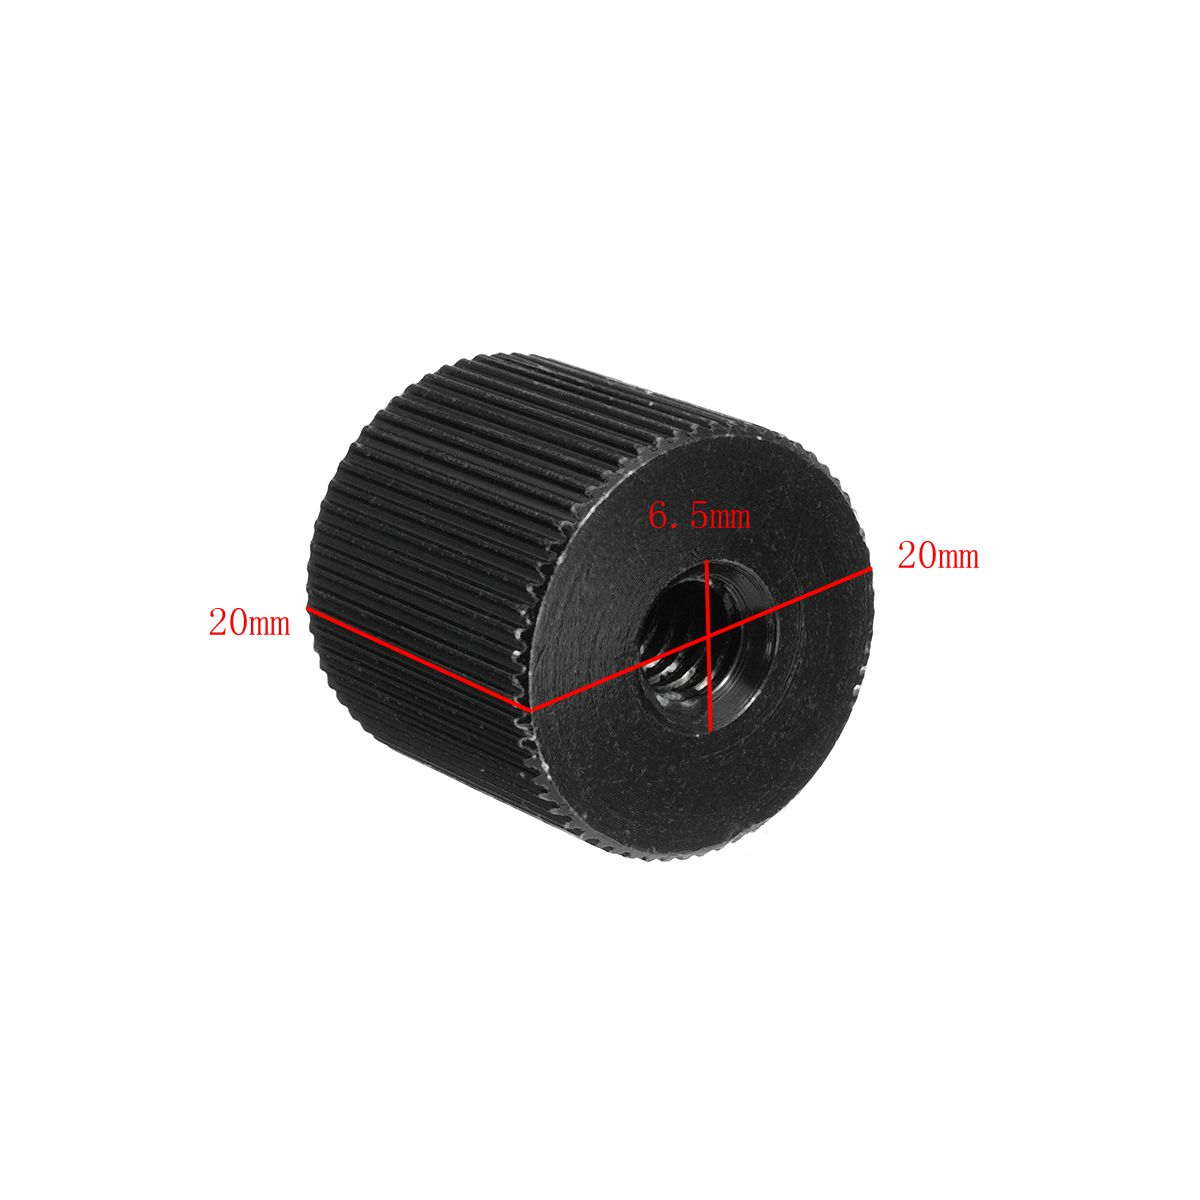 1/4 inch Female Tripod Mount Screw to Flash Hot Shoe Adapter for Tripod Camera